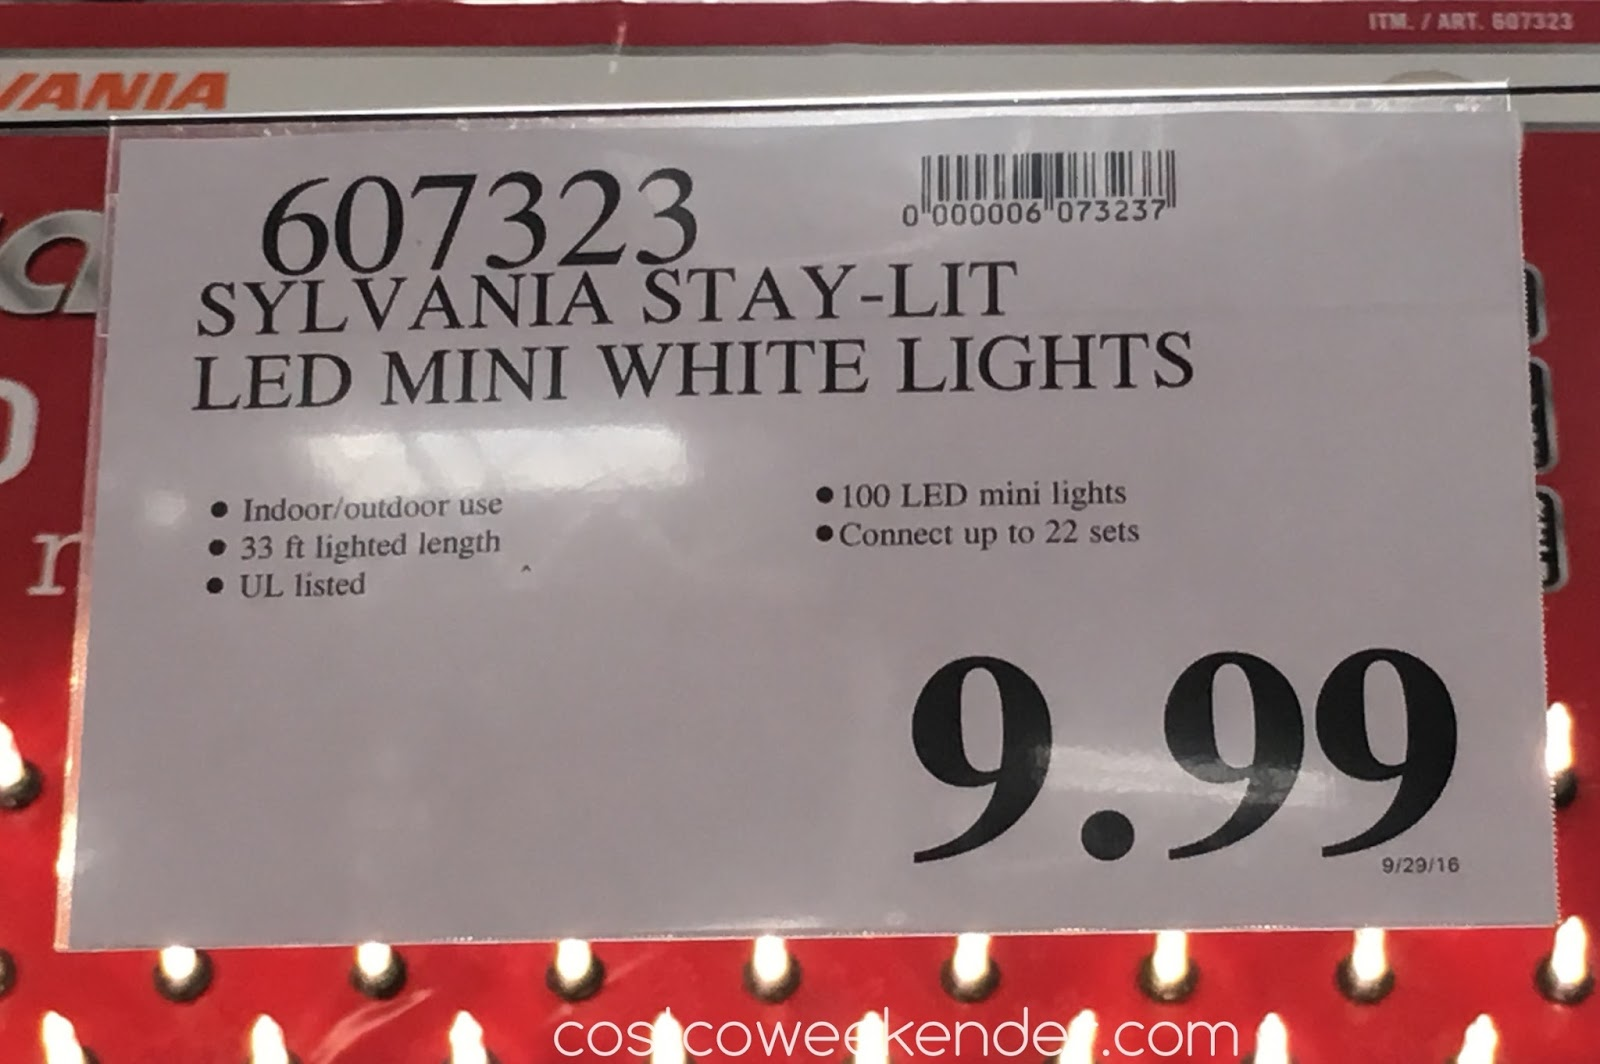 Deal for the Sylvania Stay-lit 100 LED Mini White Lights at Costco